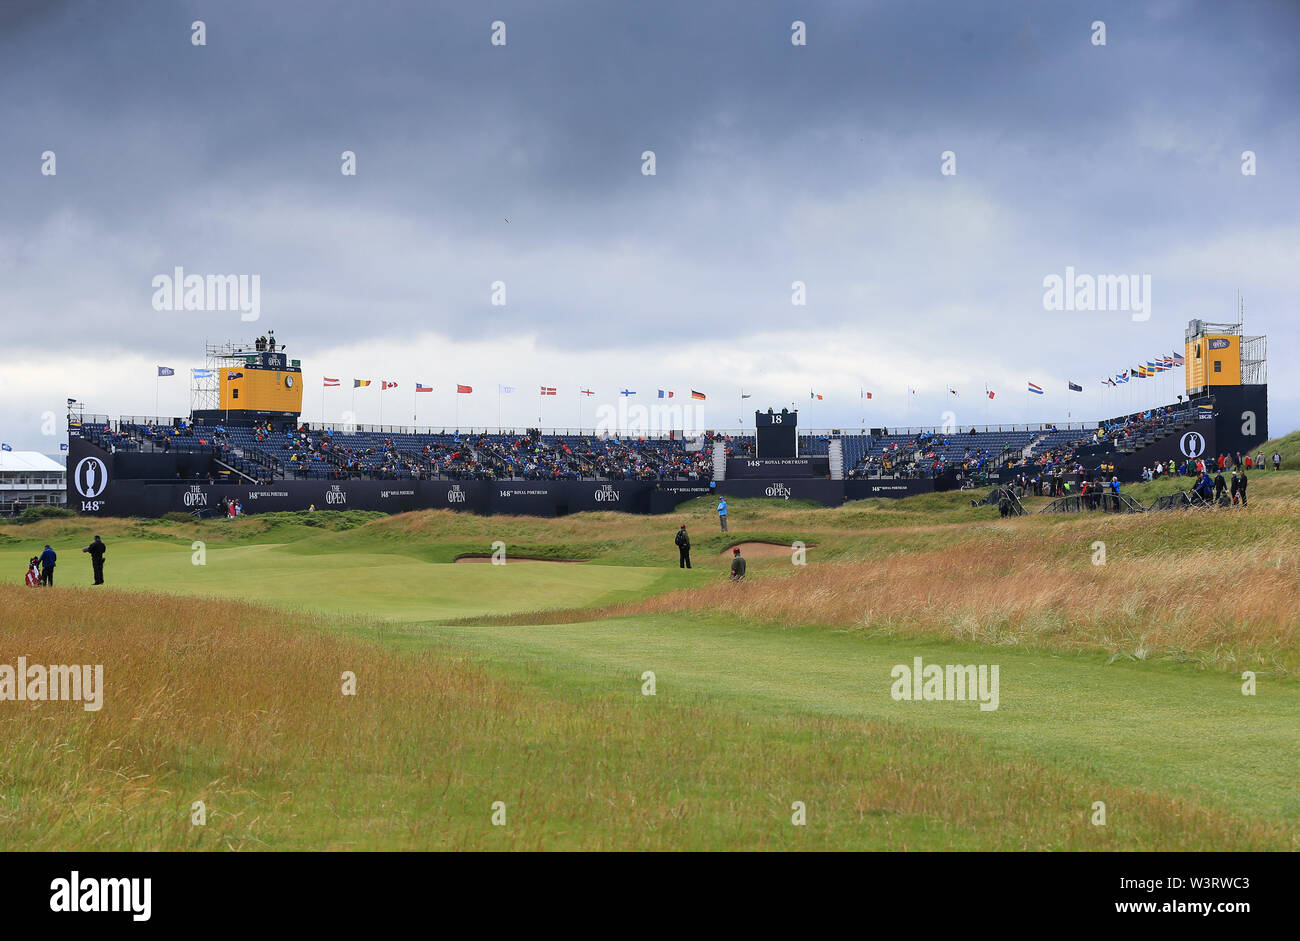 Portrush, Country Antrim, Northern Ireland. 17th July, 2019. The 148th Open Golf Championship, Royal Portrush Golf Club, Practice day; a view of the 18th hole and grandstands surrounding the green Credit: Action Plus Sports Images/Alamy Live News Stock Photo